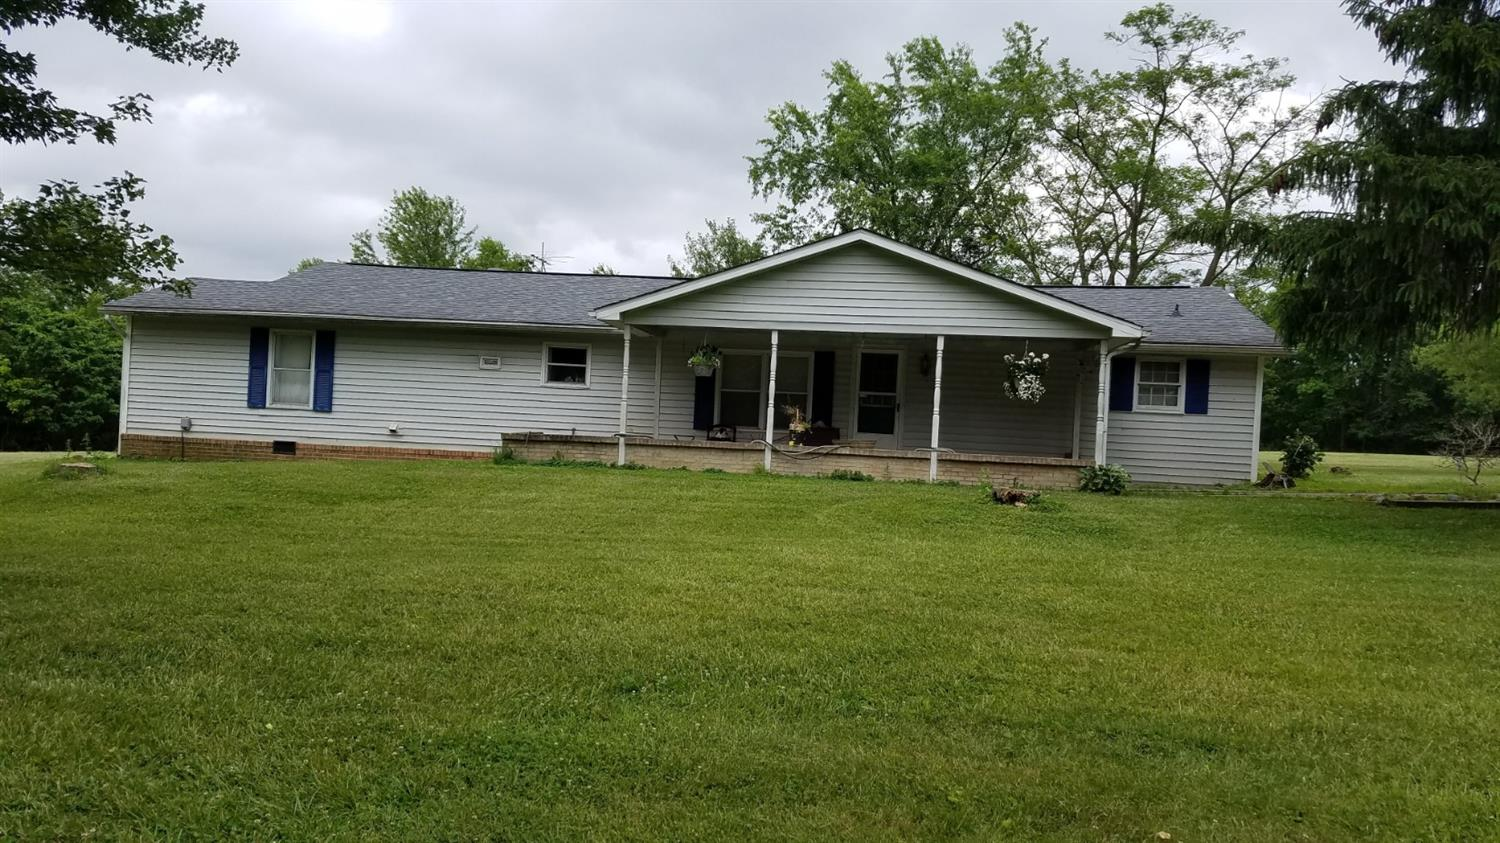 Property for sale at 1352 St Rt 222, Franklin Twp,  Ohio 45106